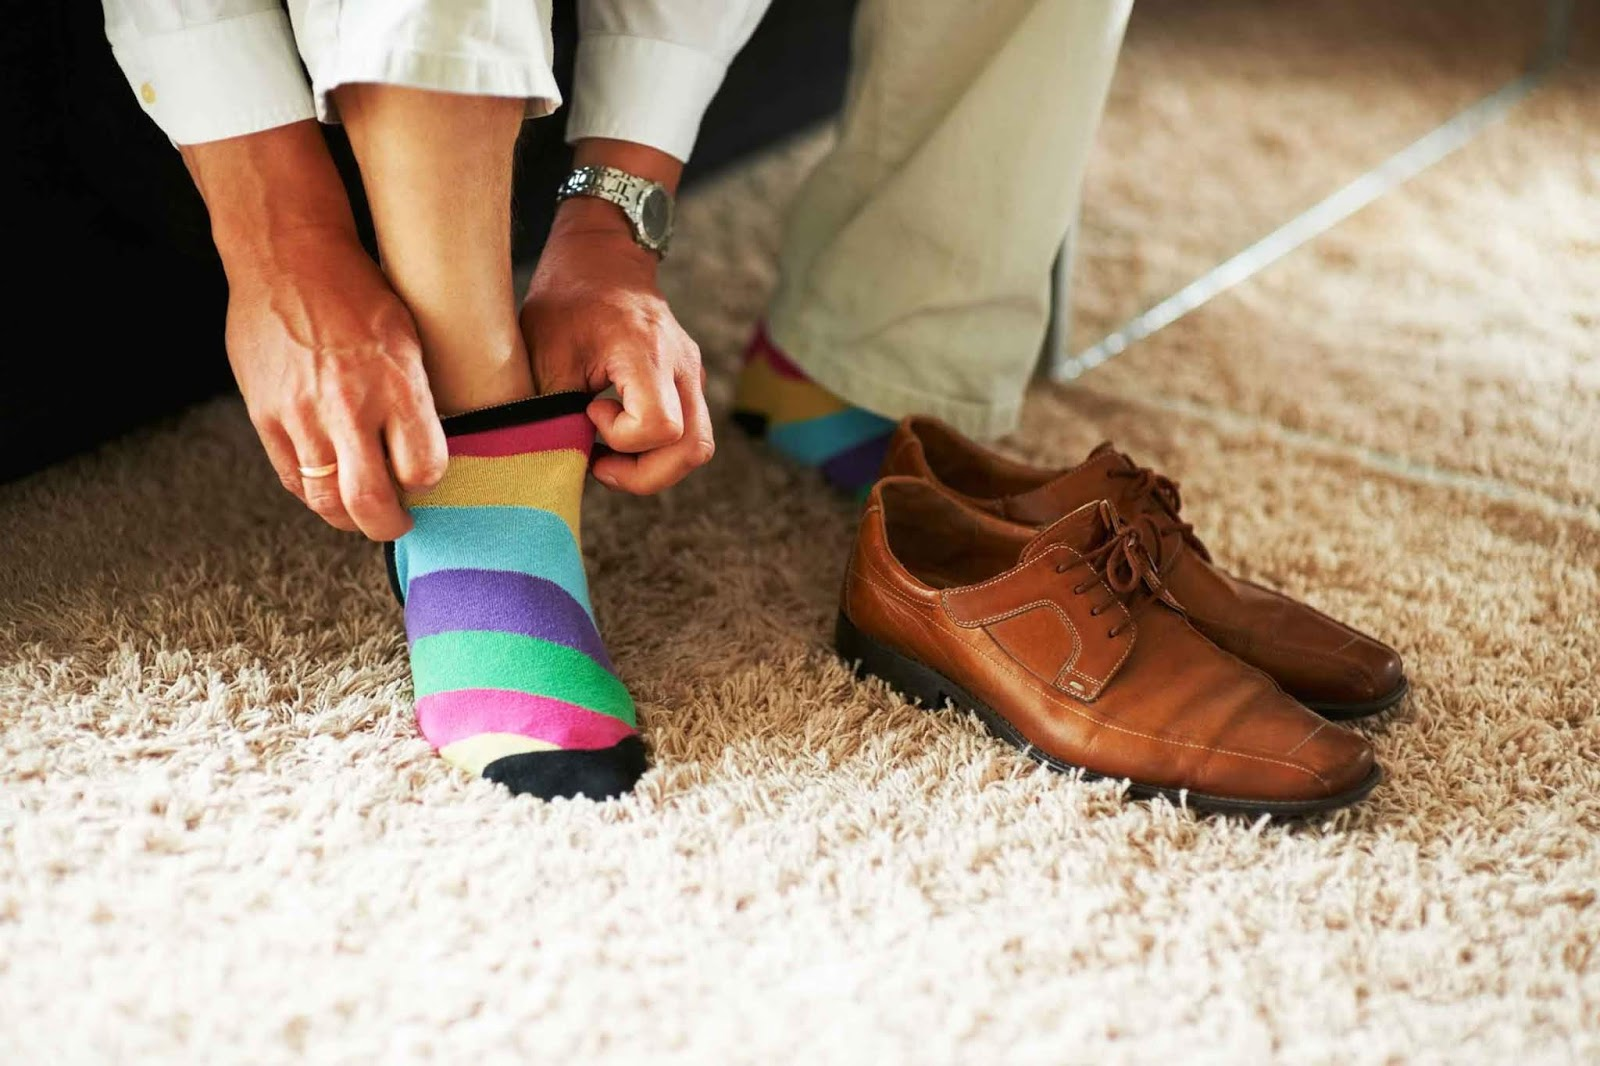 Scientists Ask To Stop Wearing Shoes At Home Because Of Diseases